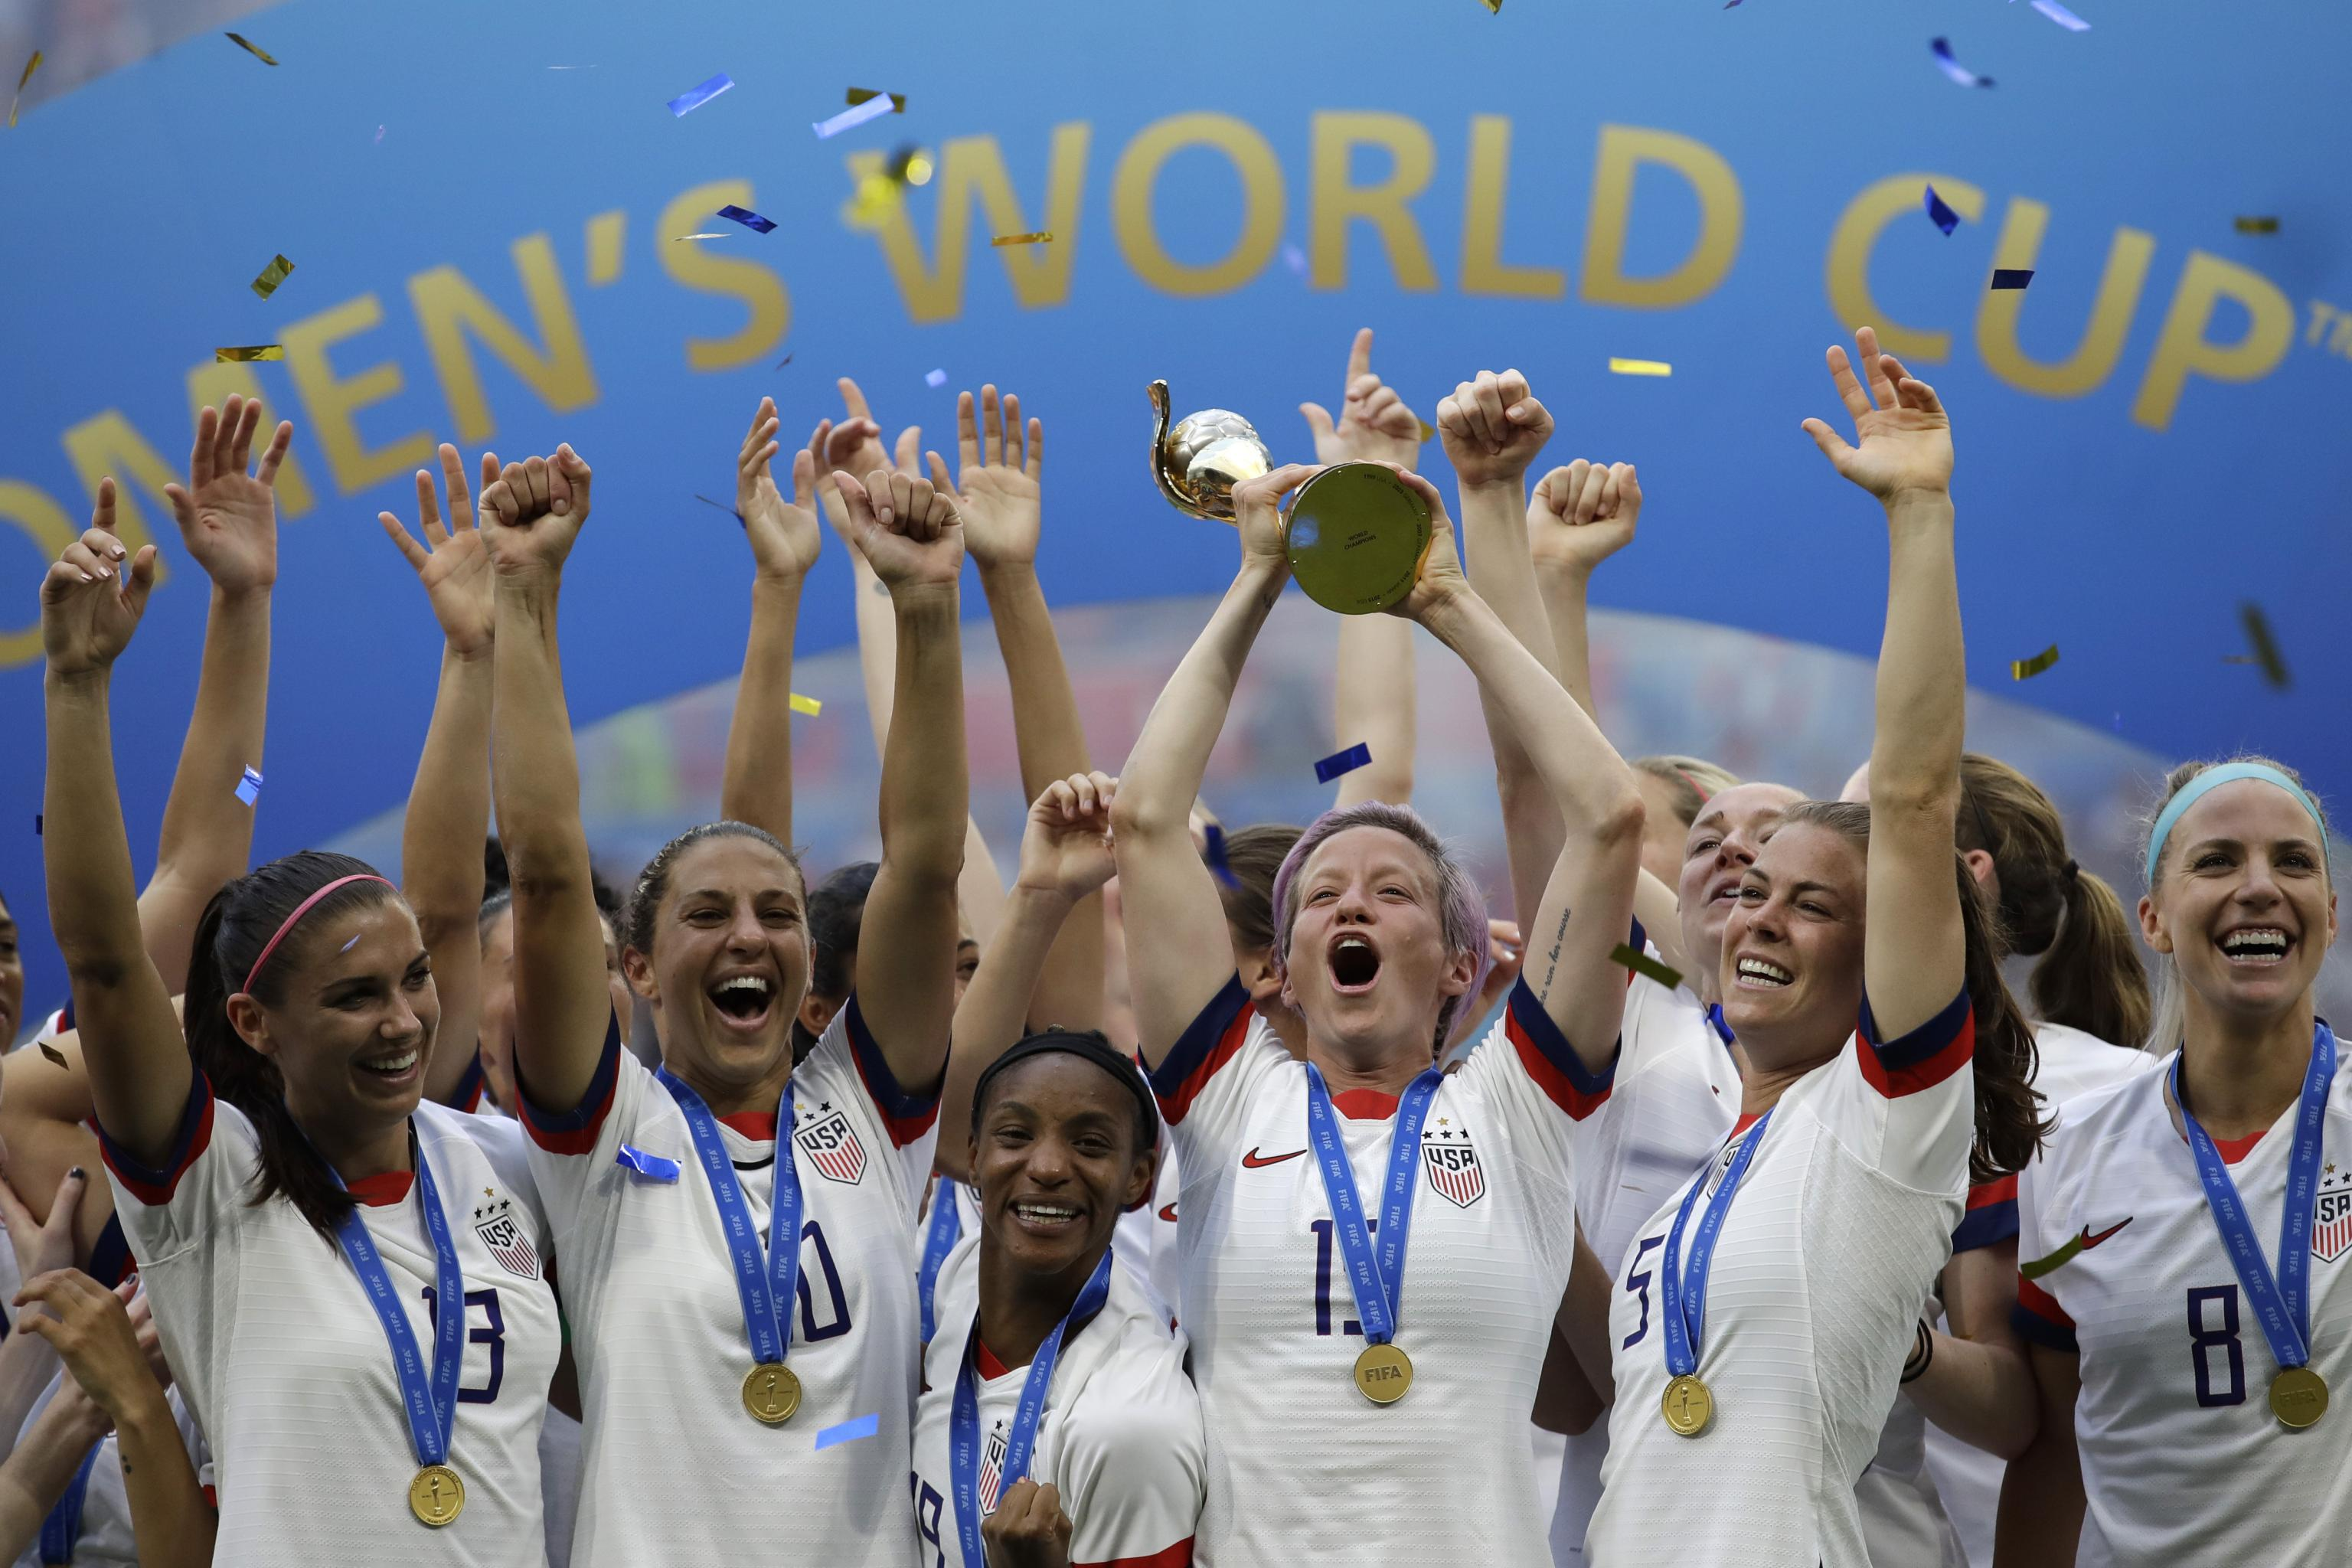 United States Women's World Cup